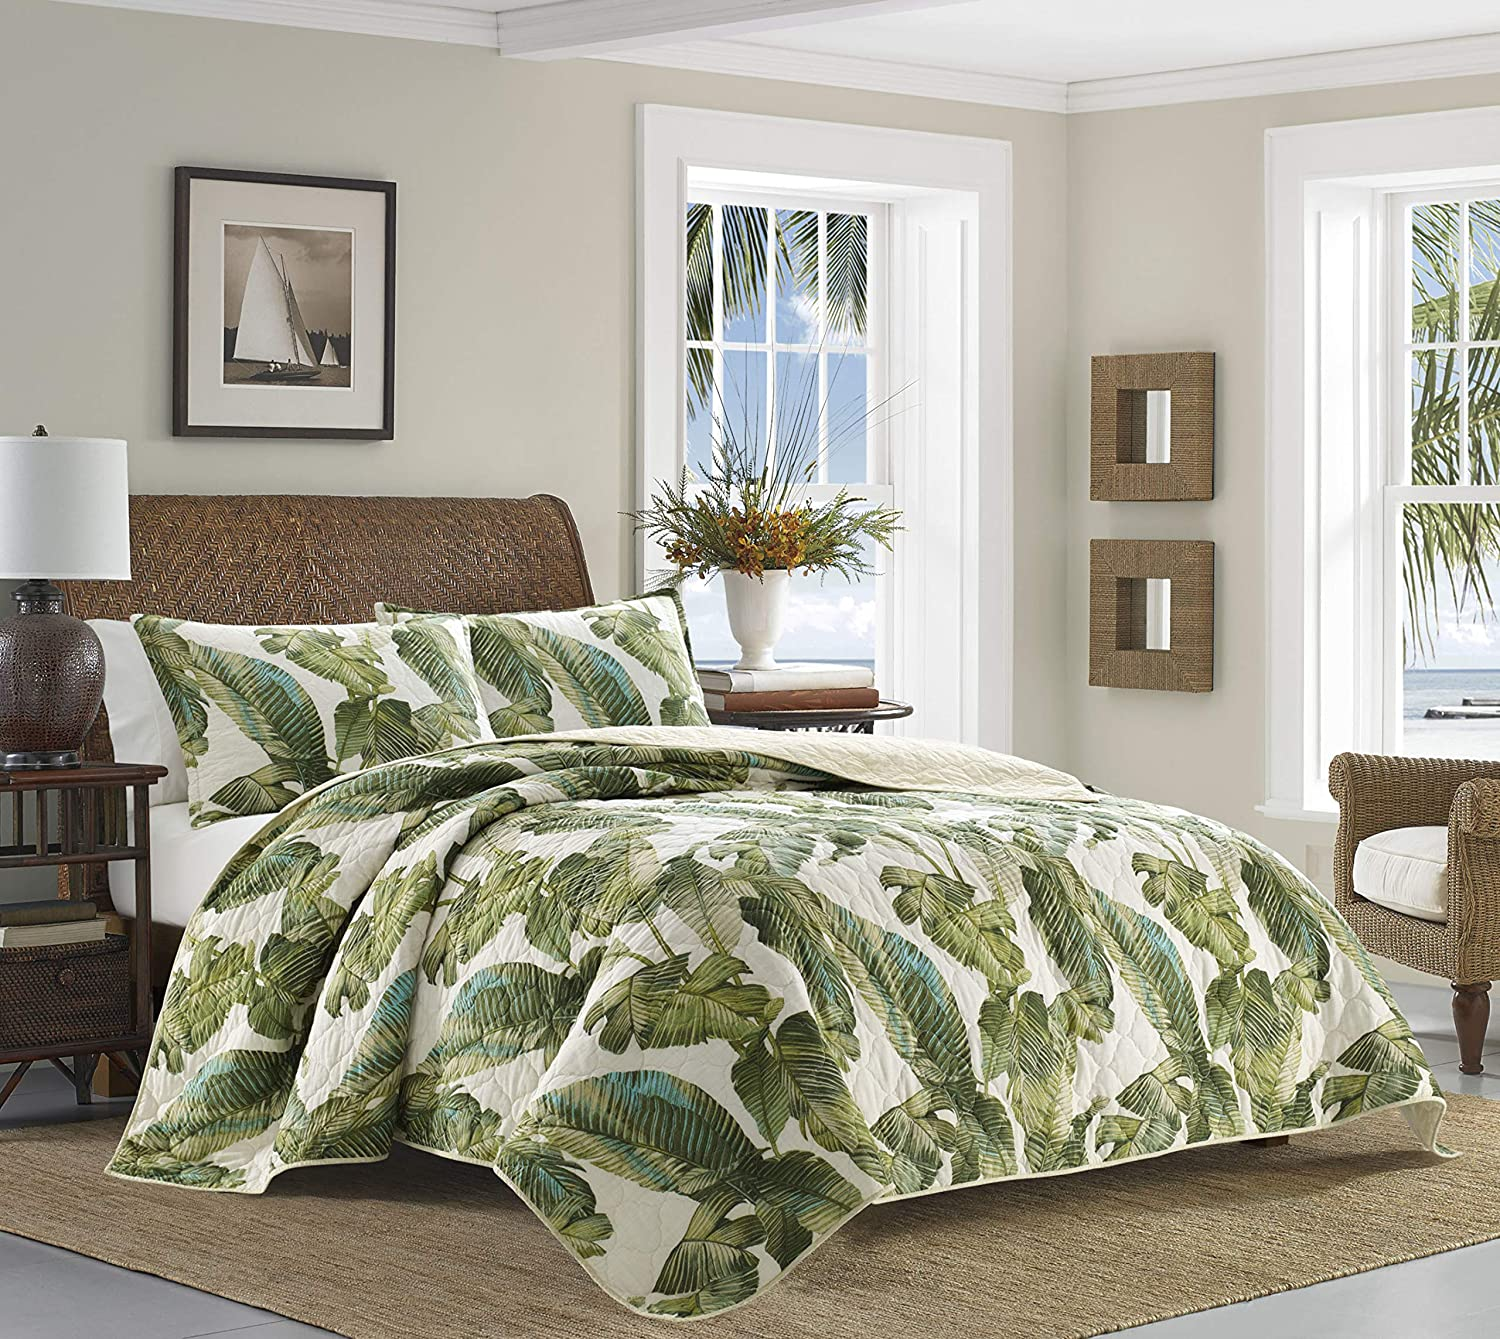 Tommy Bahama | Fiesta Palms Bedding Collection | Luxury Quality Ultra Soft Cotton Quilt Coverlet 3 Piece Set, Comfortable & Stylish Design for Home Décor, King, Green